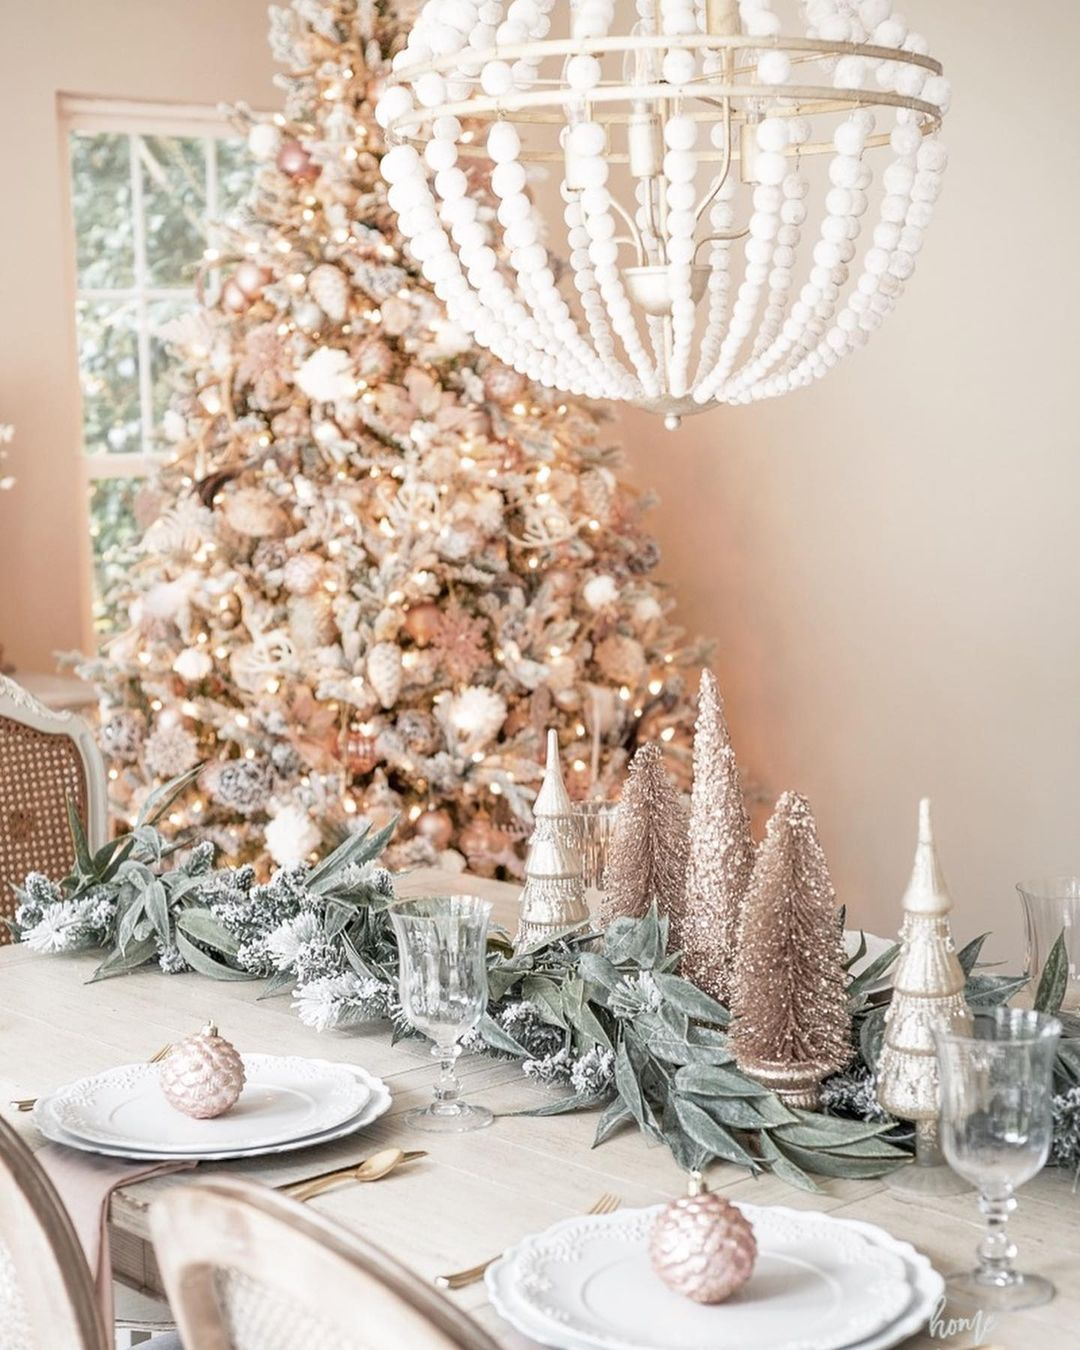 56 WONDERFUL AND CAREFUL CHRISTMAS TABLES Pictures 31